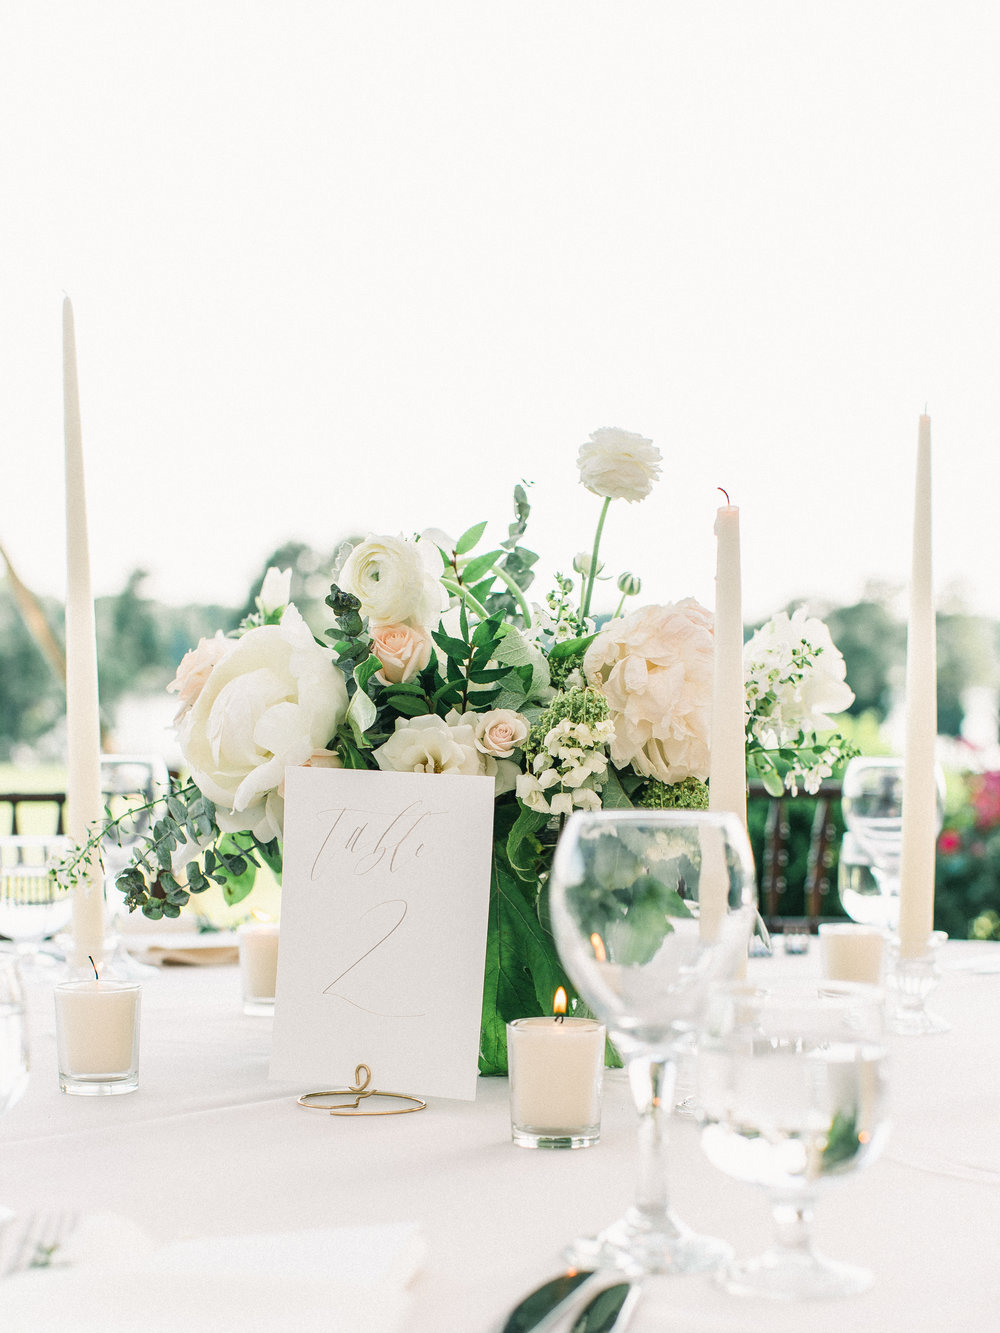 Wedding Table Numbers | Shotgunning for Love Letters